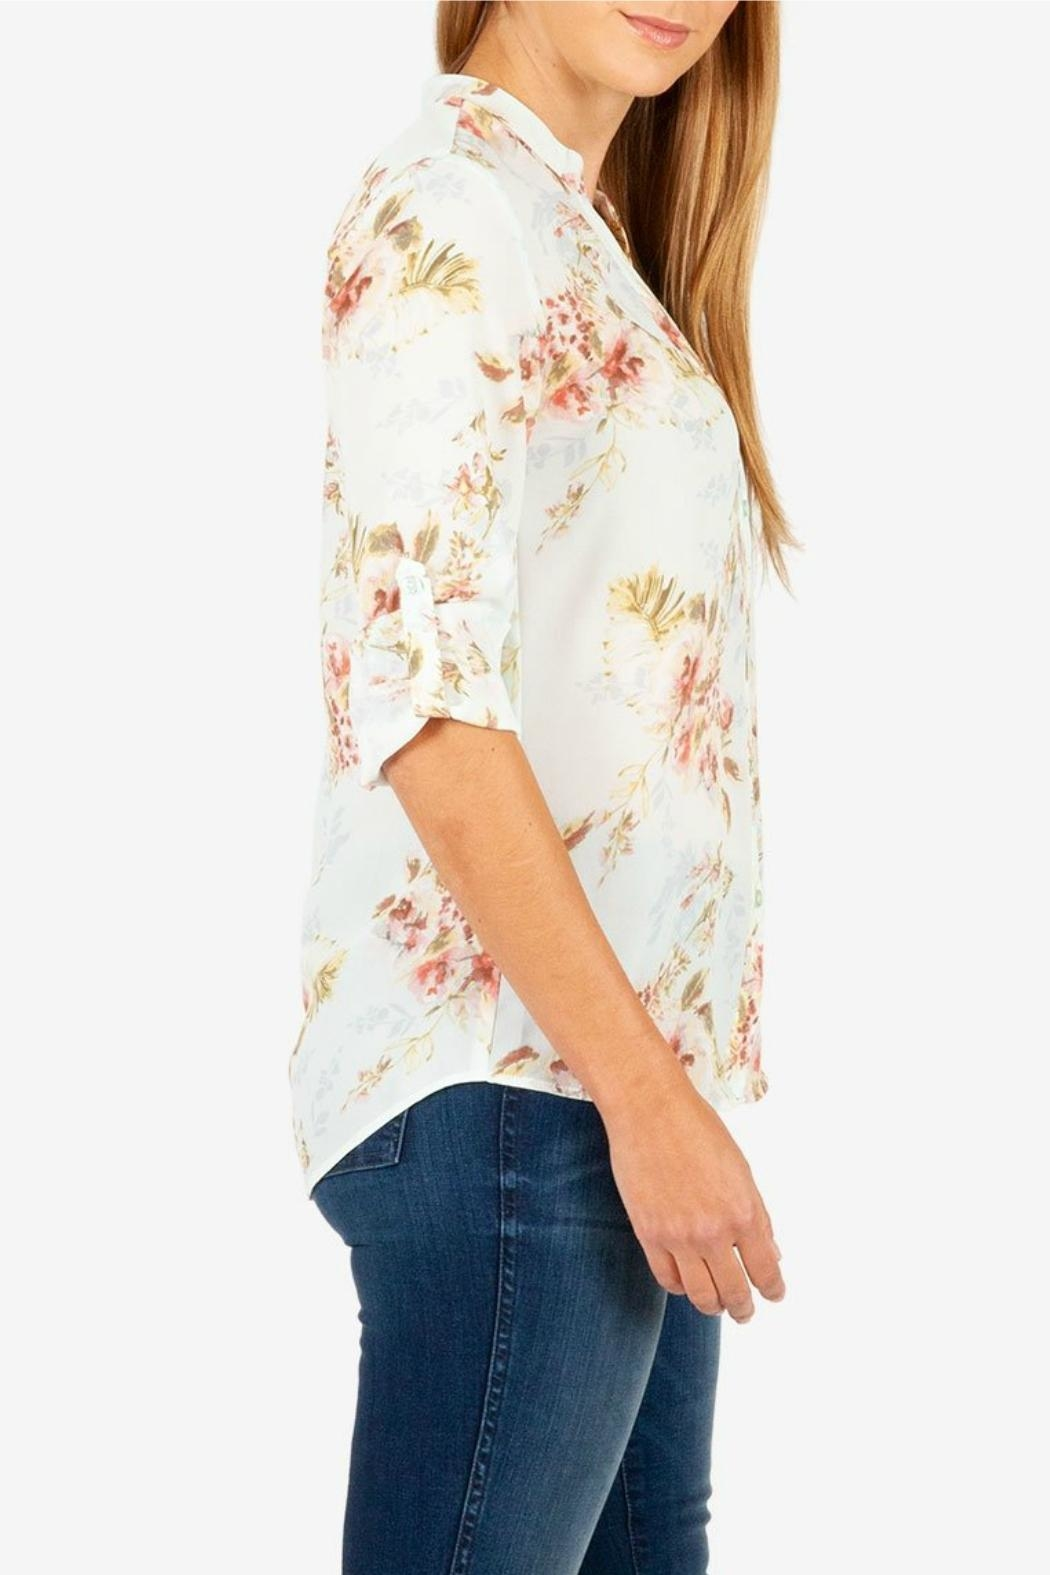 Kut from the Kloth Jasmine Crepe Blouse - Side Cropped Image